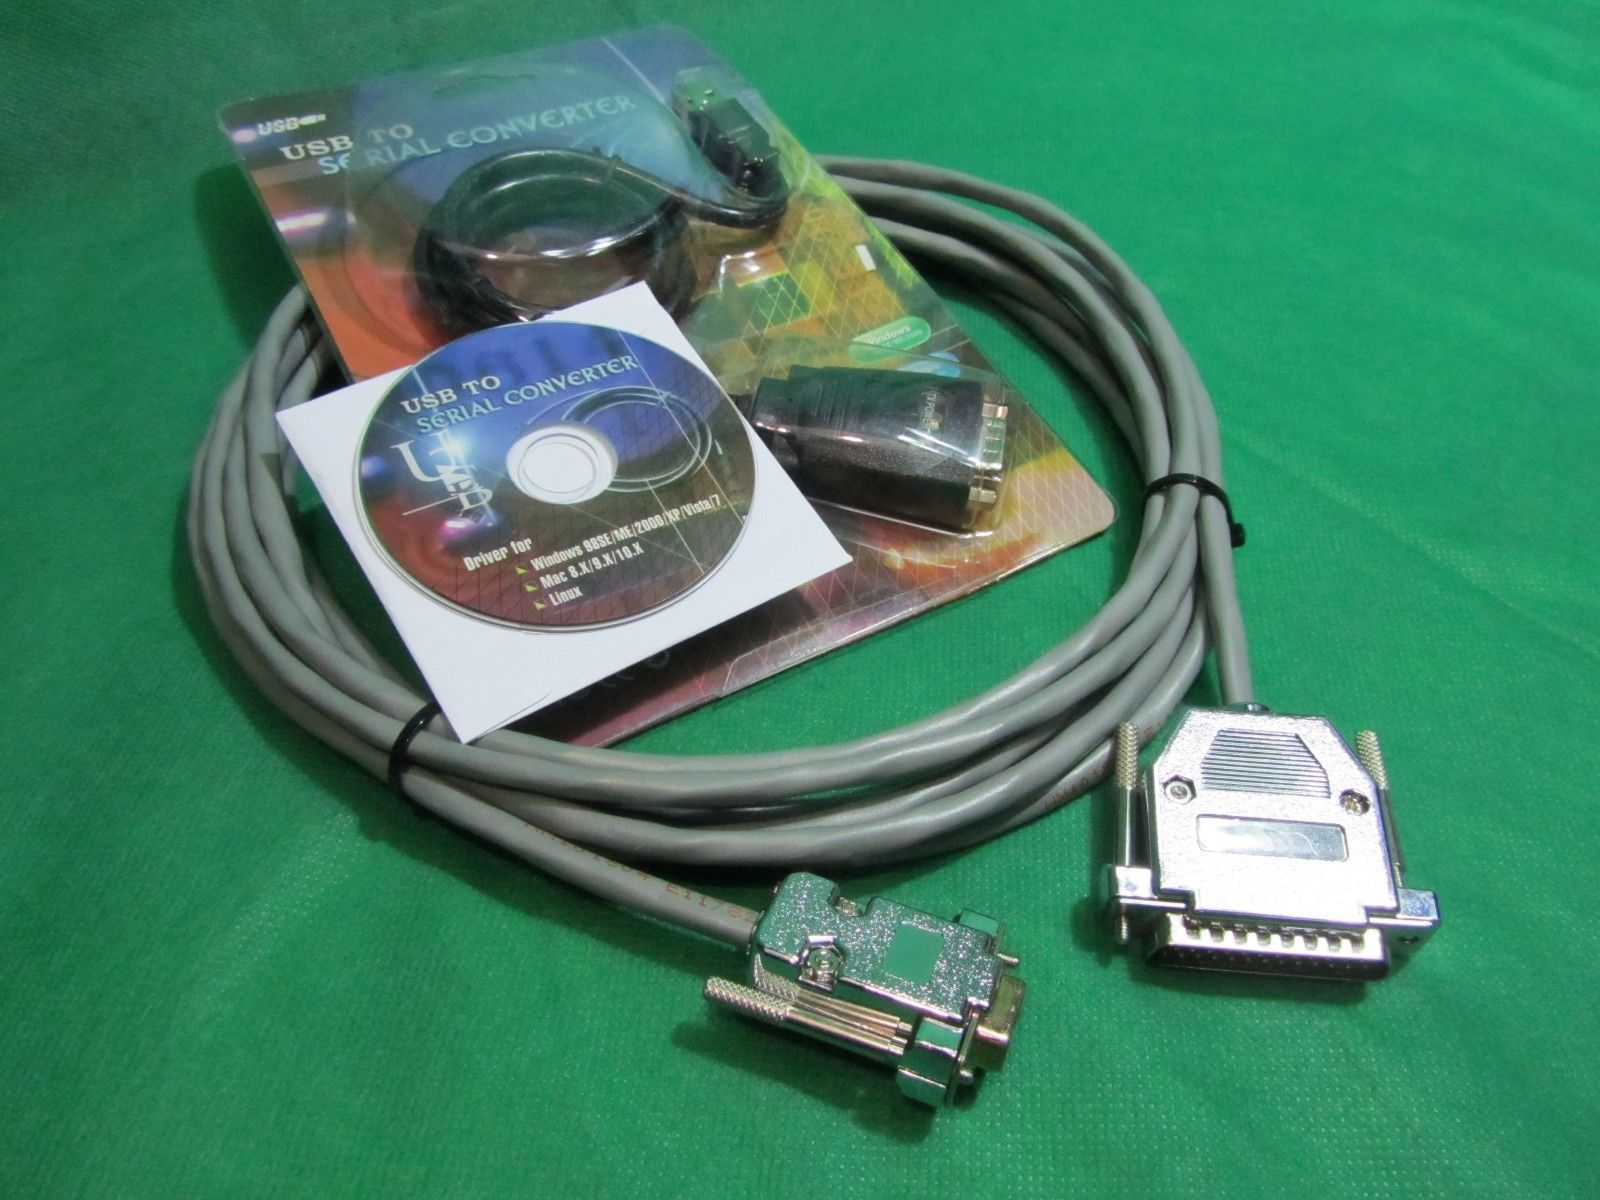 Primary image for 5 ft Quality CNC DNC RS232 Serial Cable DB9F to DB25M for PC and Laptop Kit.